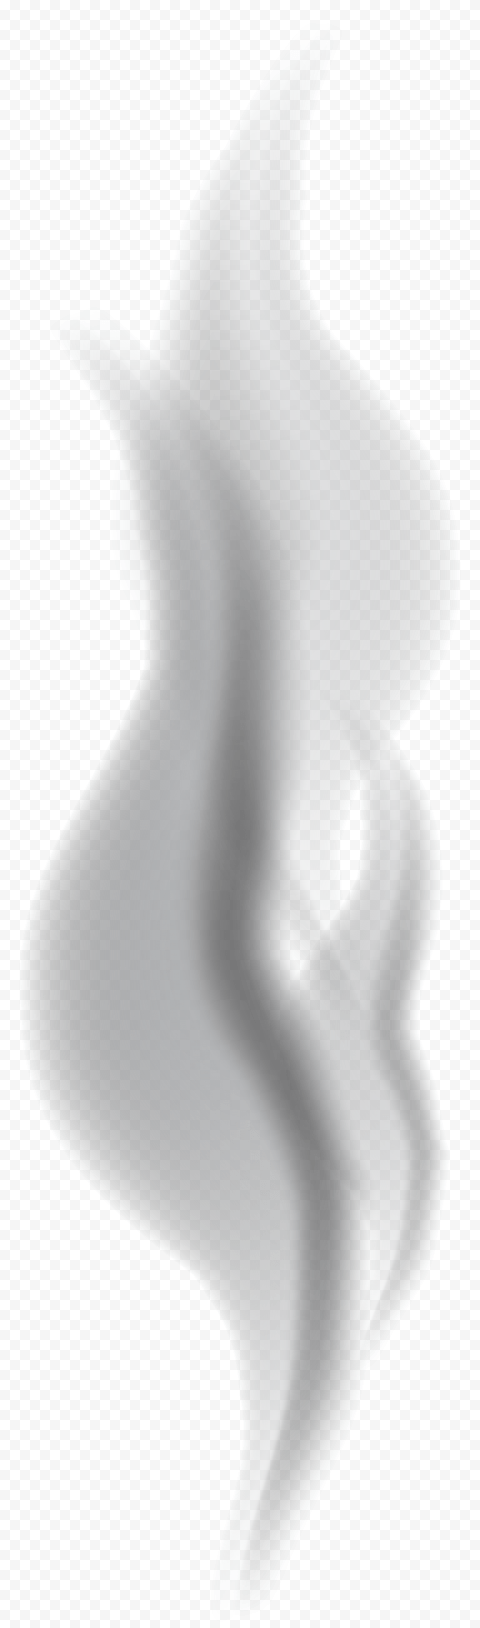 Smoke Png Download Cutout Png Clipart Images Citypng